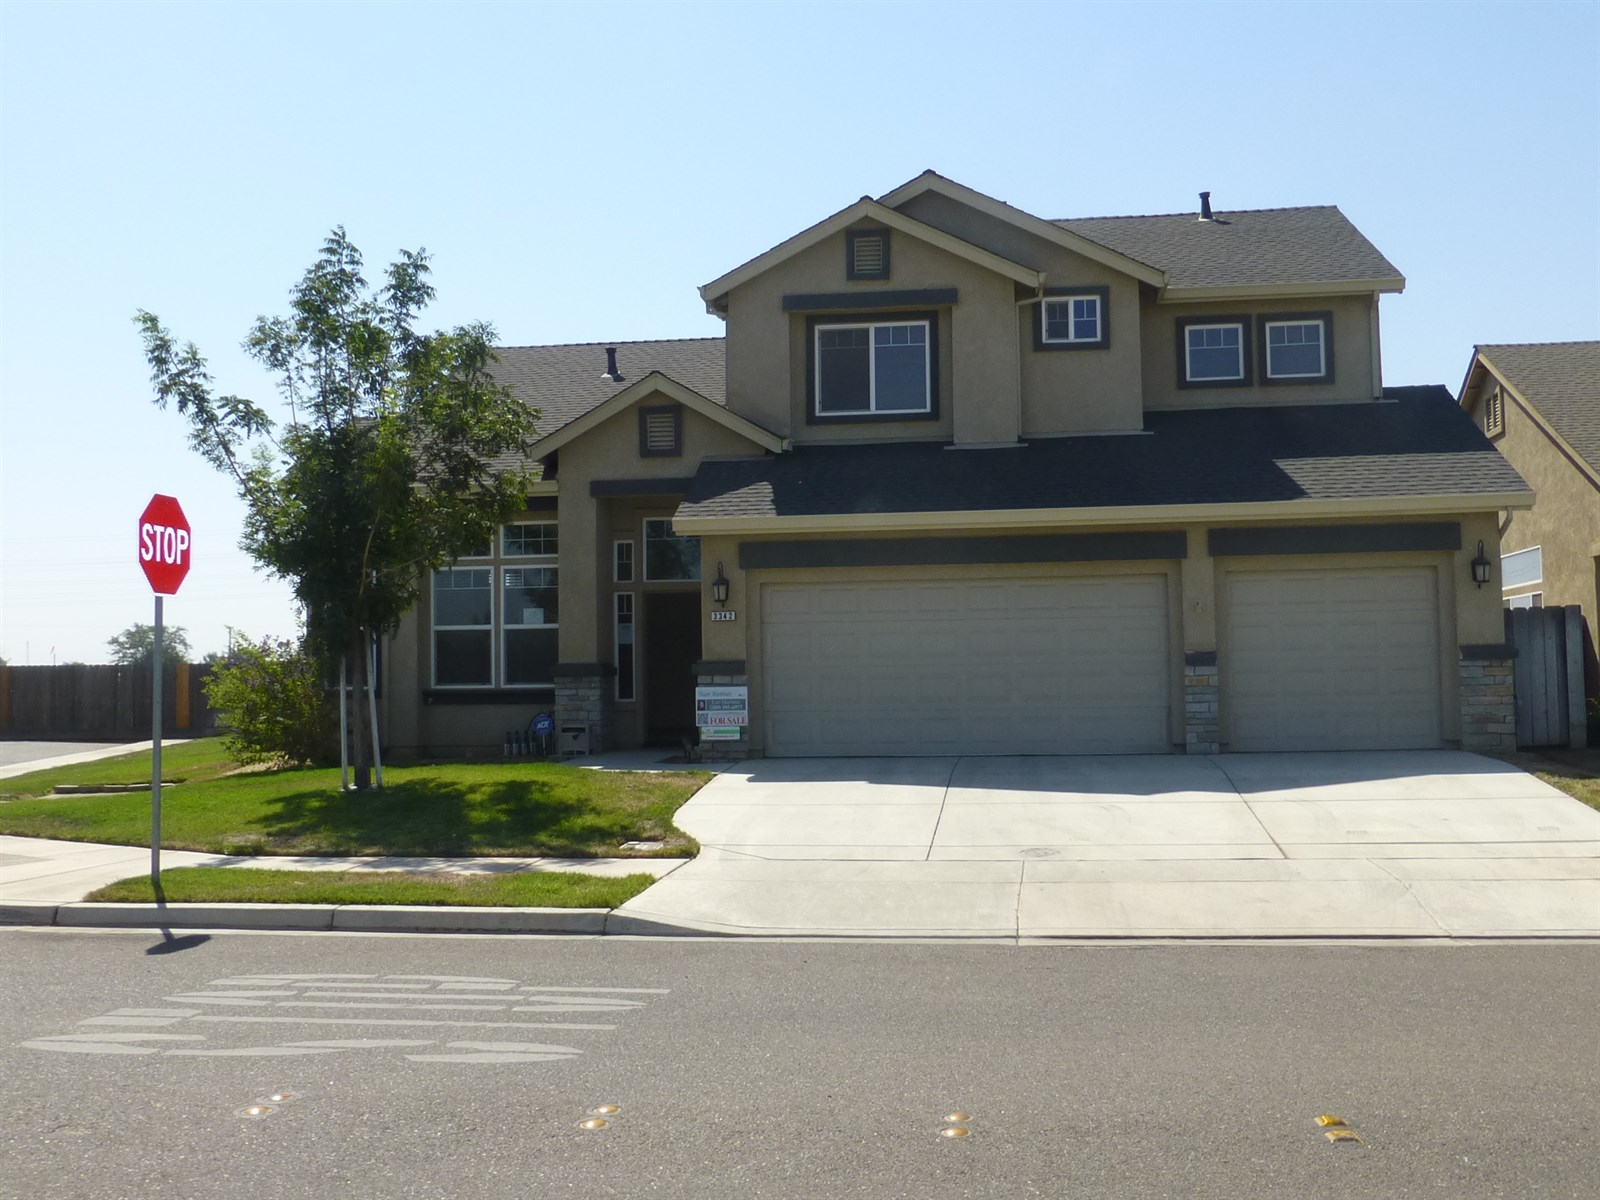 3342 Kyle Ave, Riverbank, CA 95367